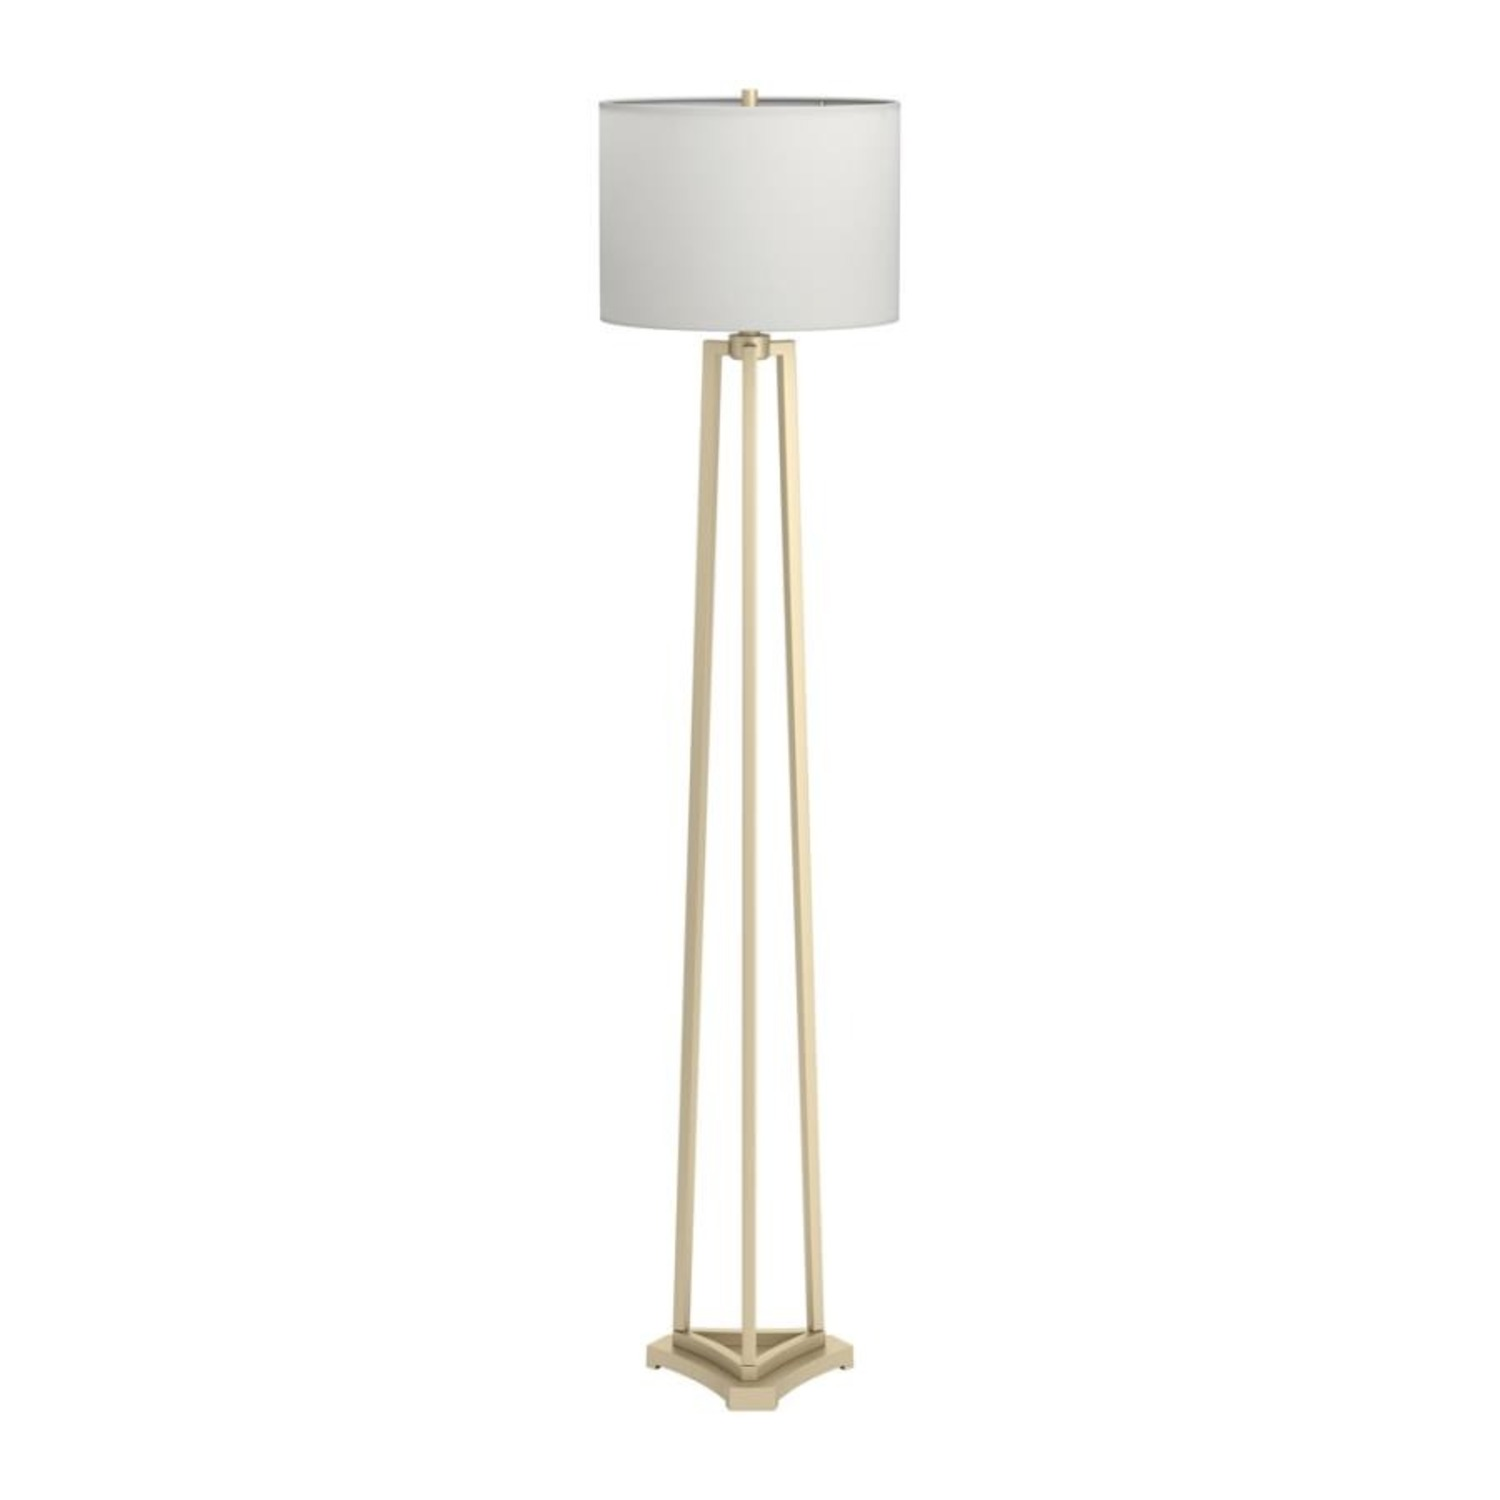 Contemporary Floor Lamp In Metal Gold Finish - image-0